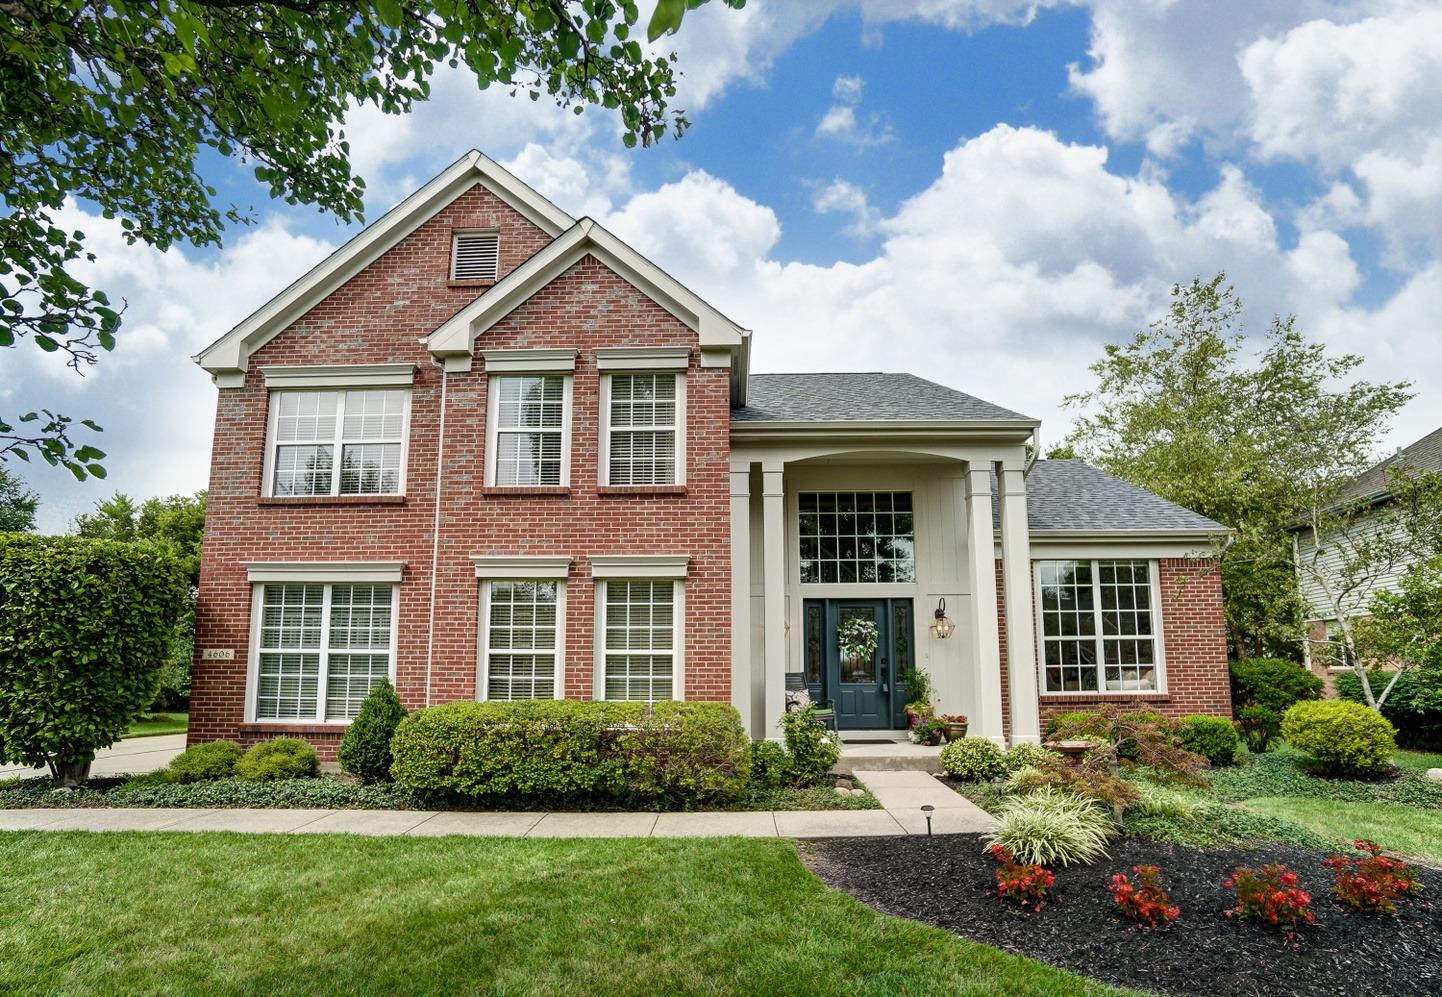 Property for sale at 4606 Placepointe Drive, Mason,  Ohio 45040